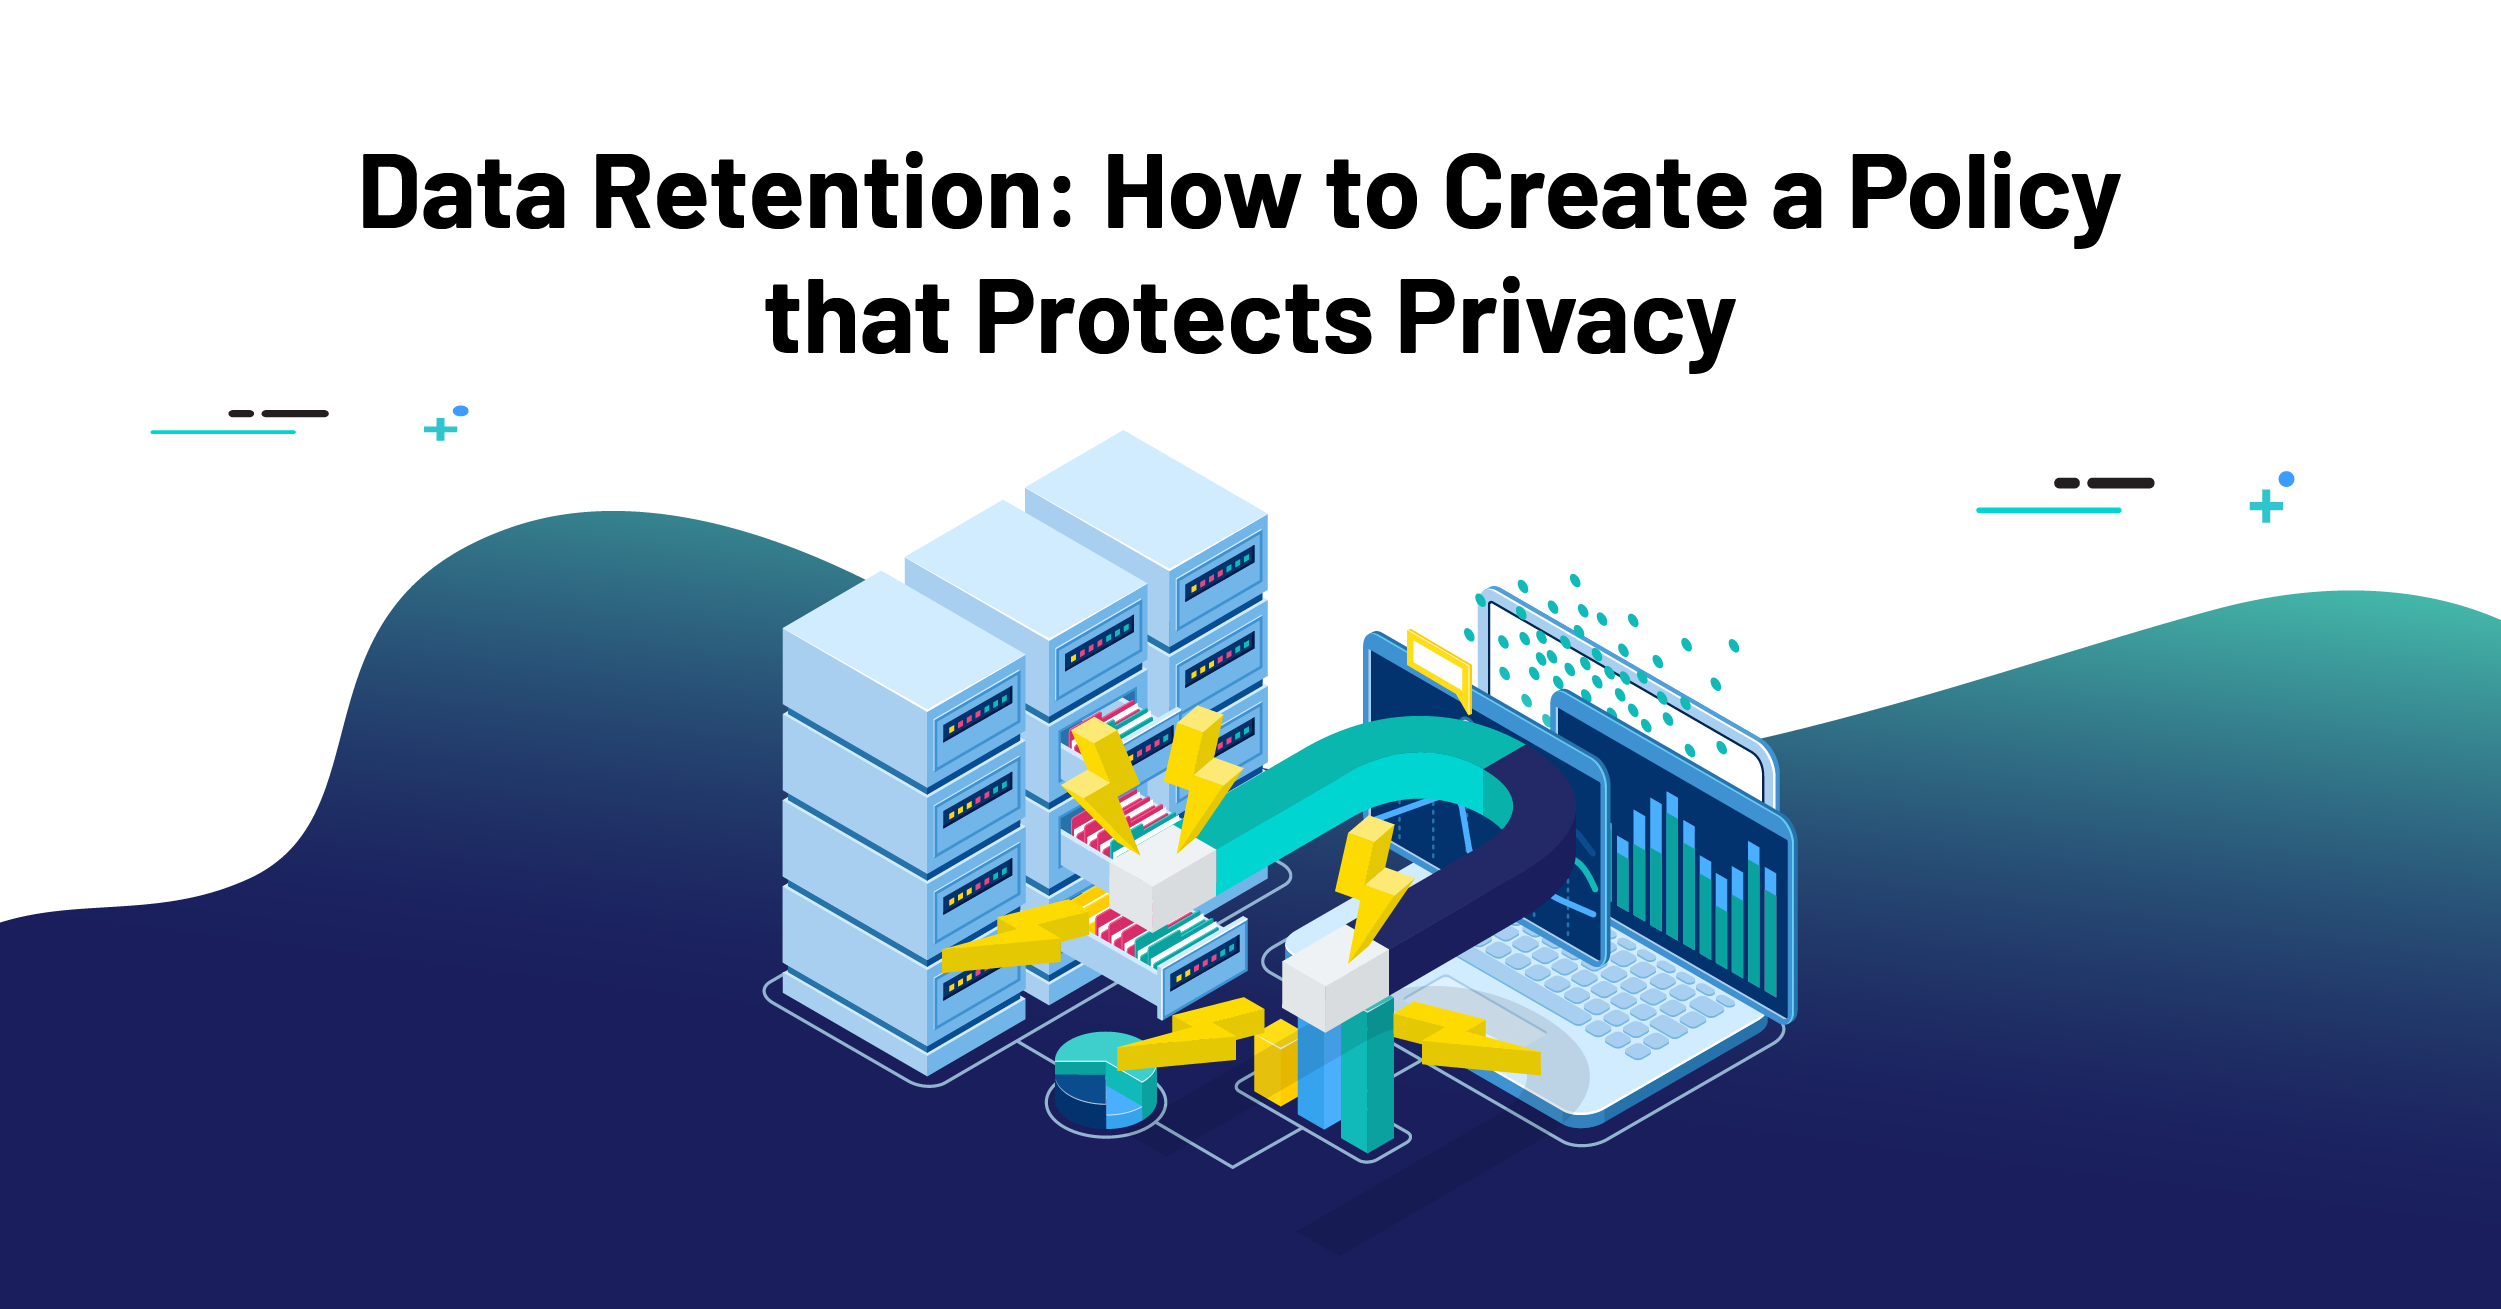 How to Create a Policy that Protects Privacy